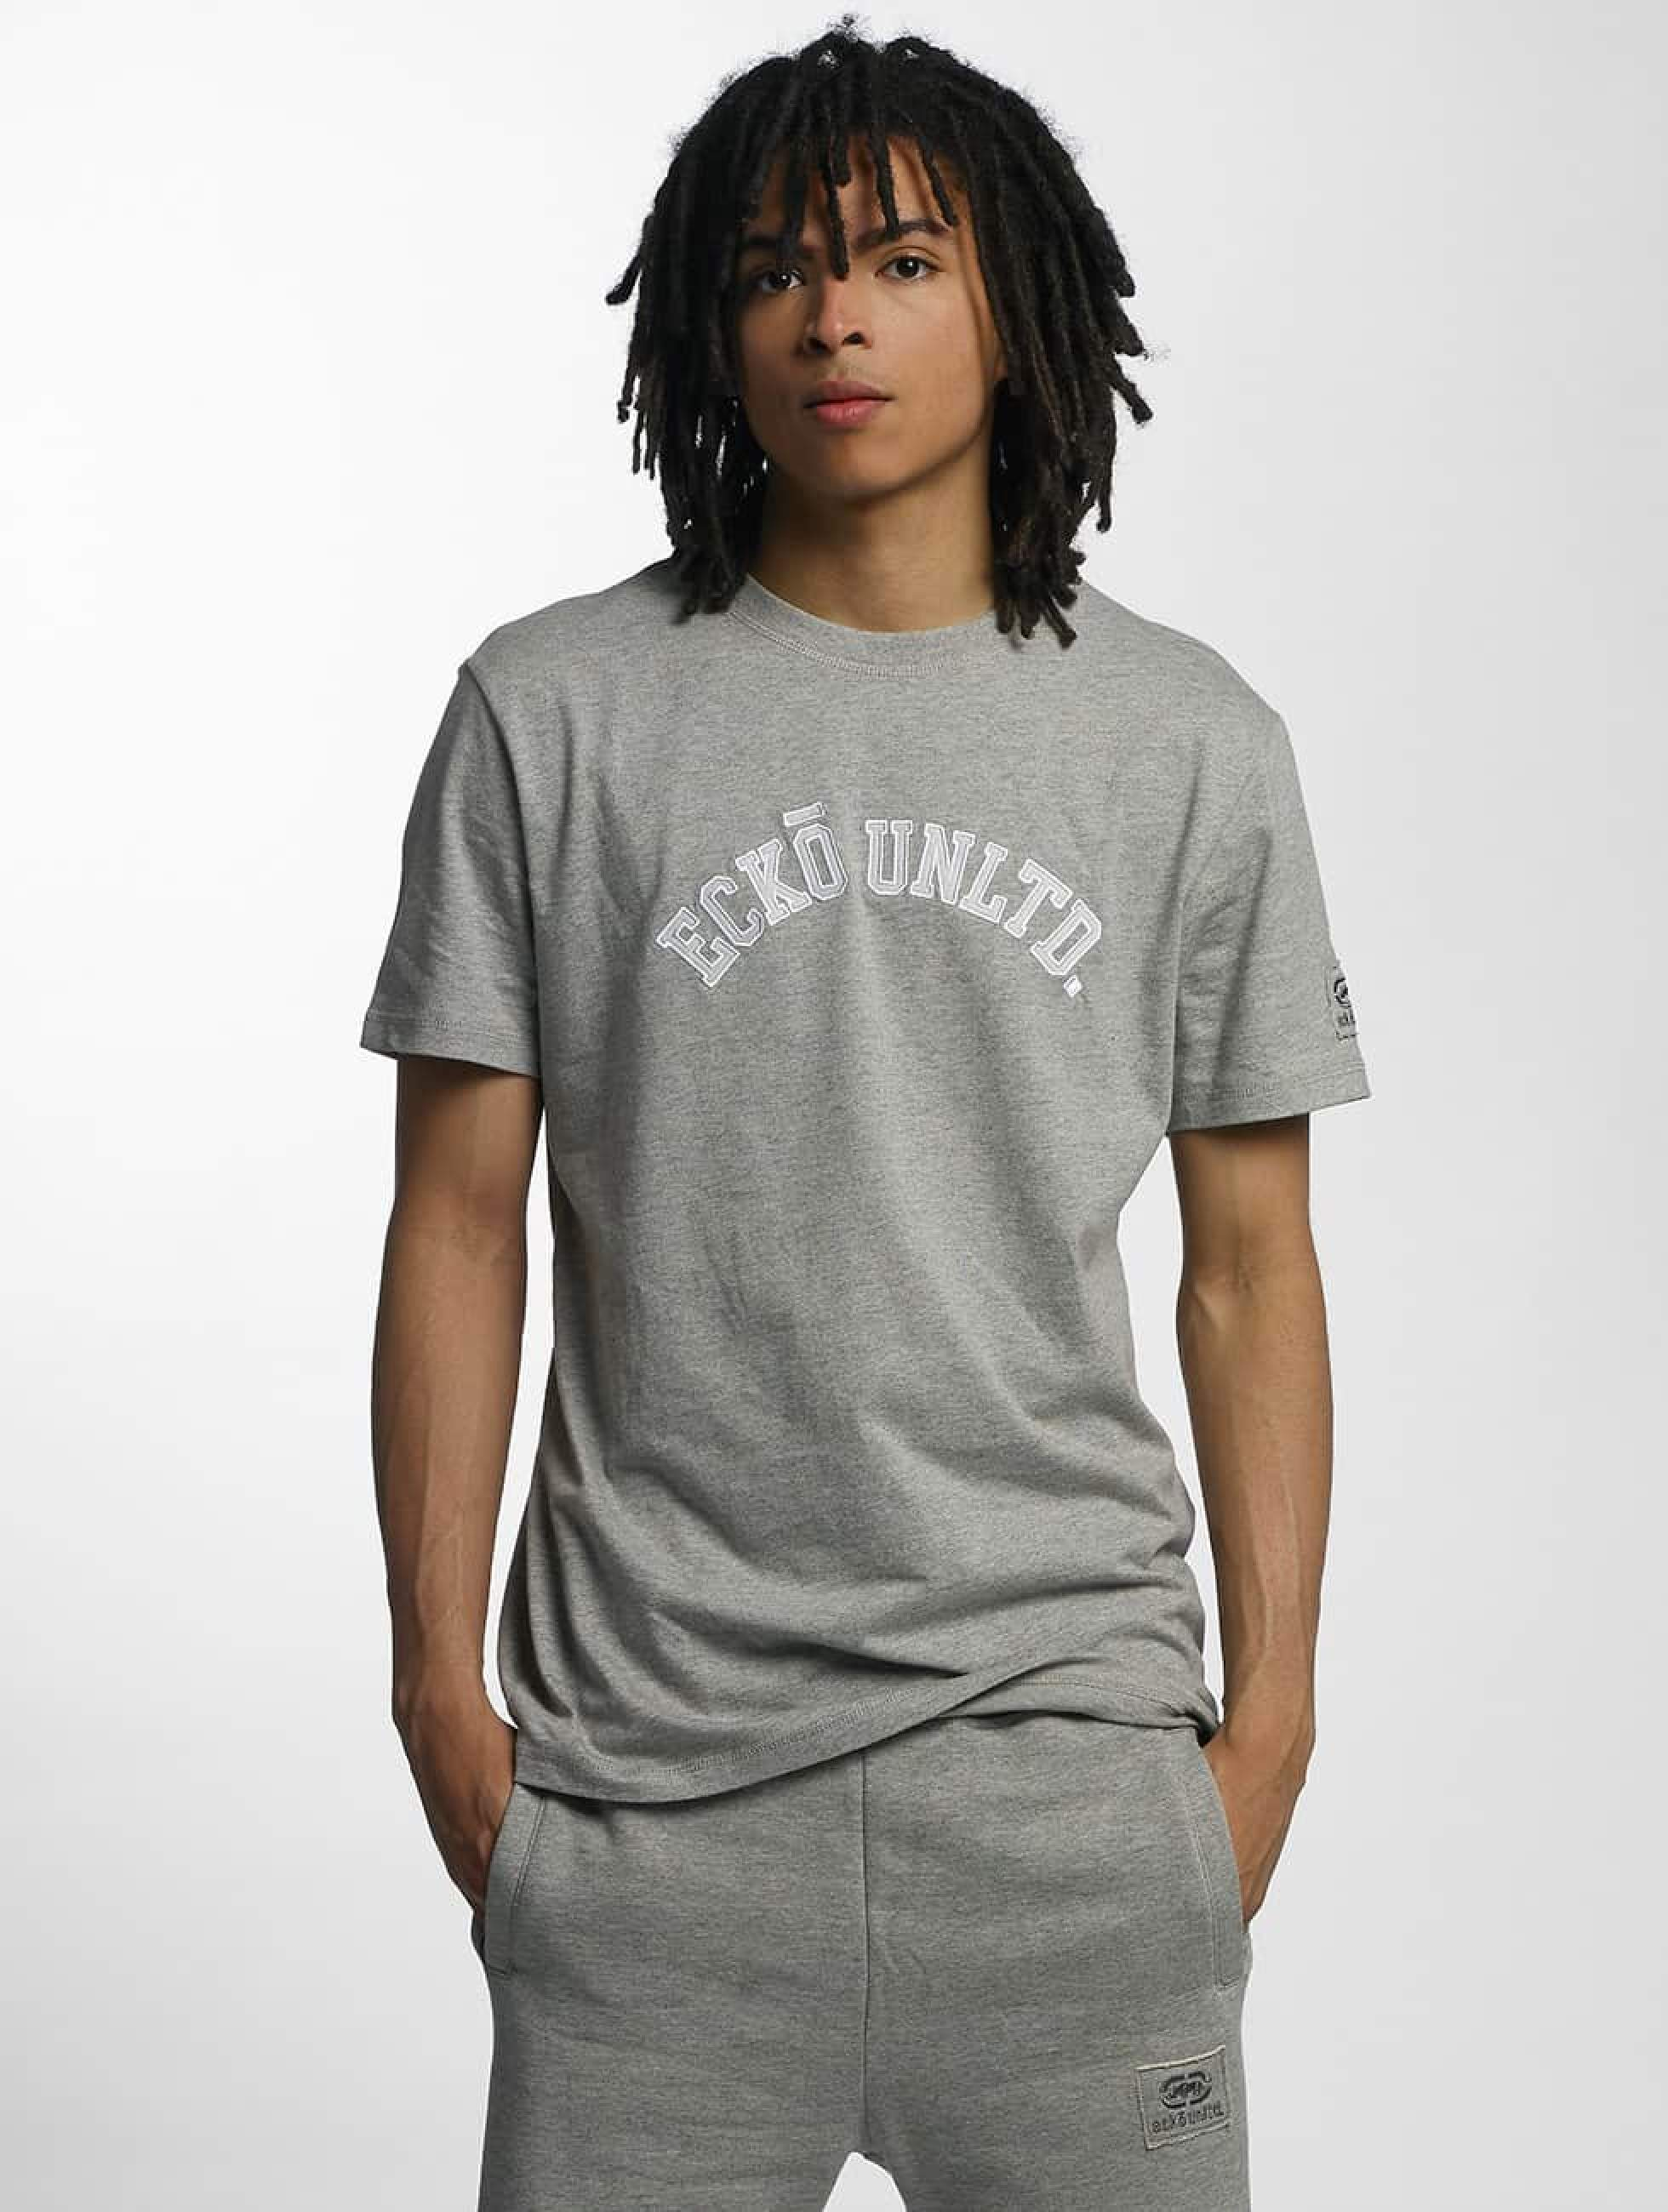 Ecko Unltd. / T-Shirt Melange in grey 3XL